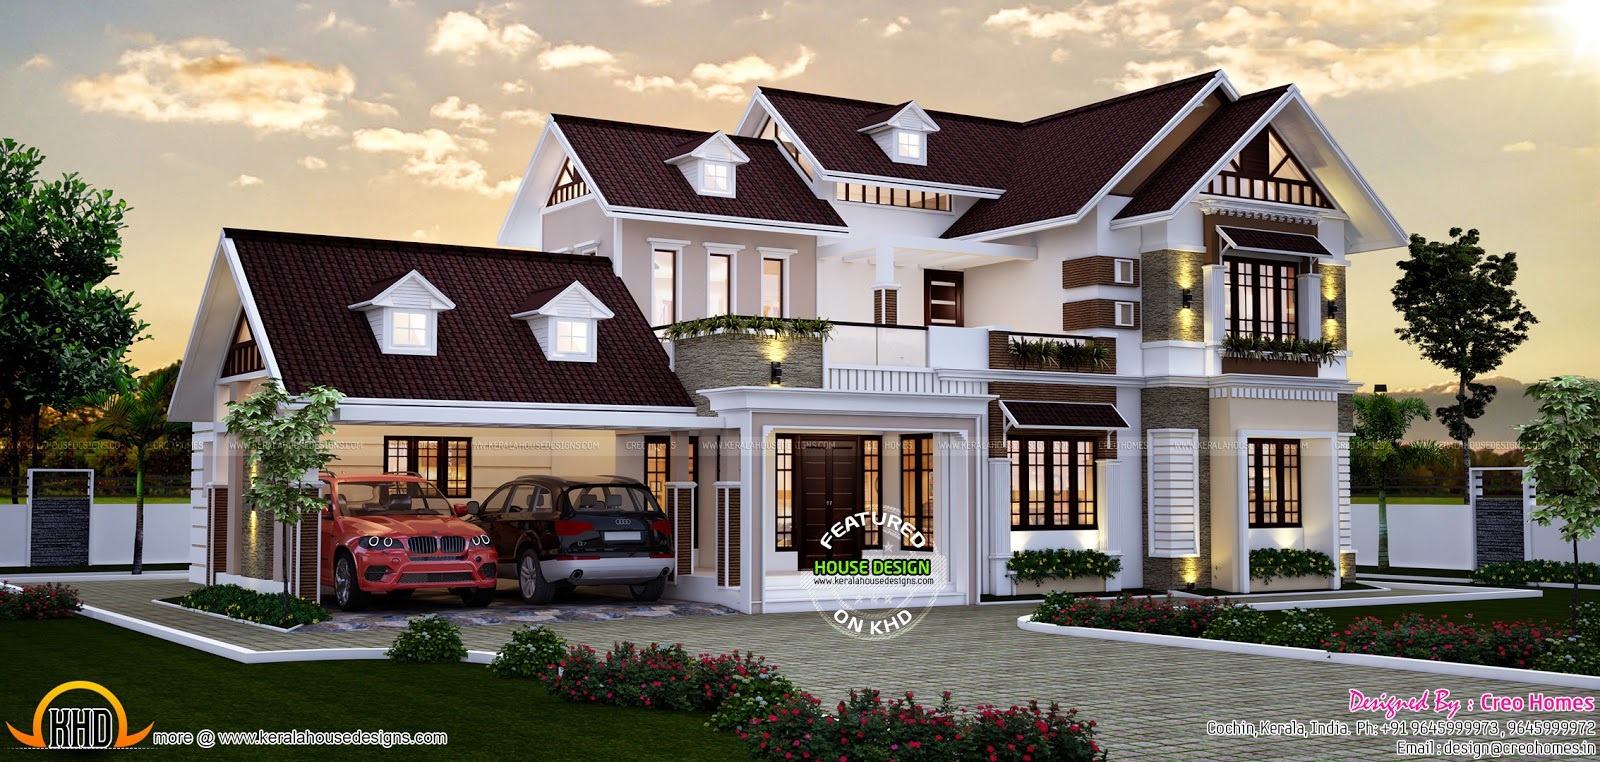 Elegant house designs home design and style Elegant home design ideas